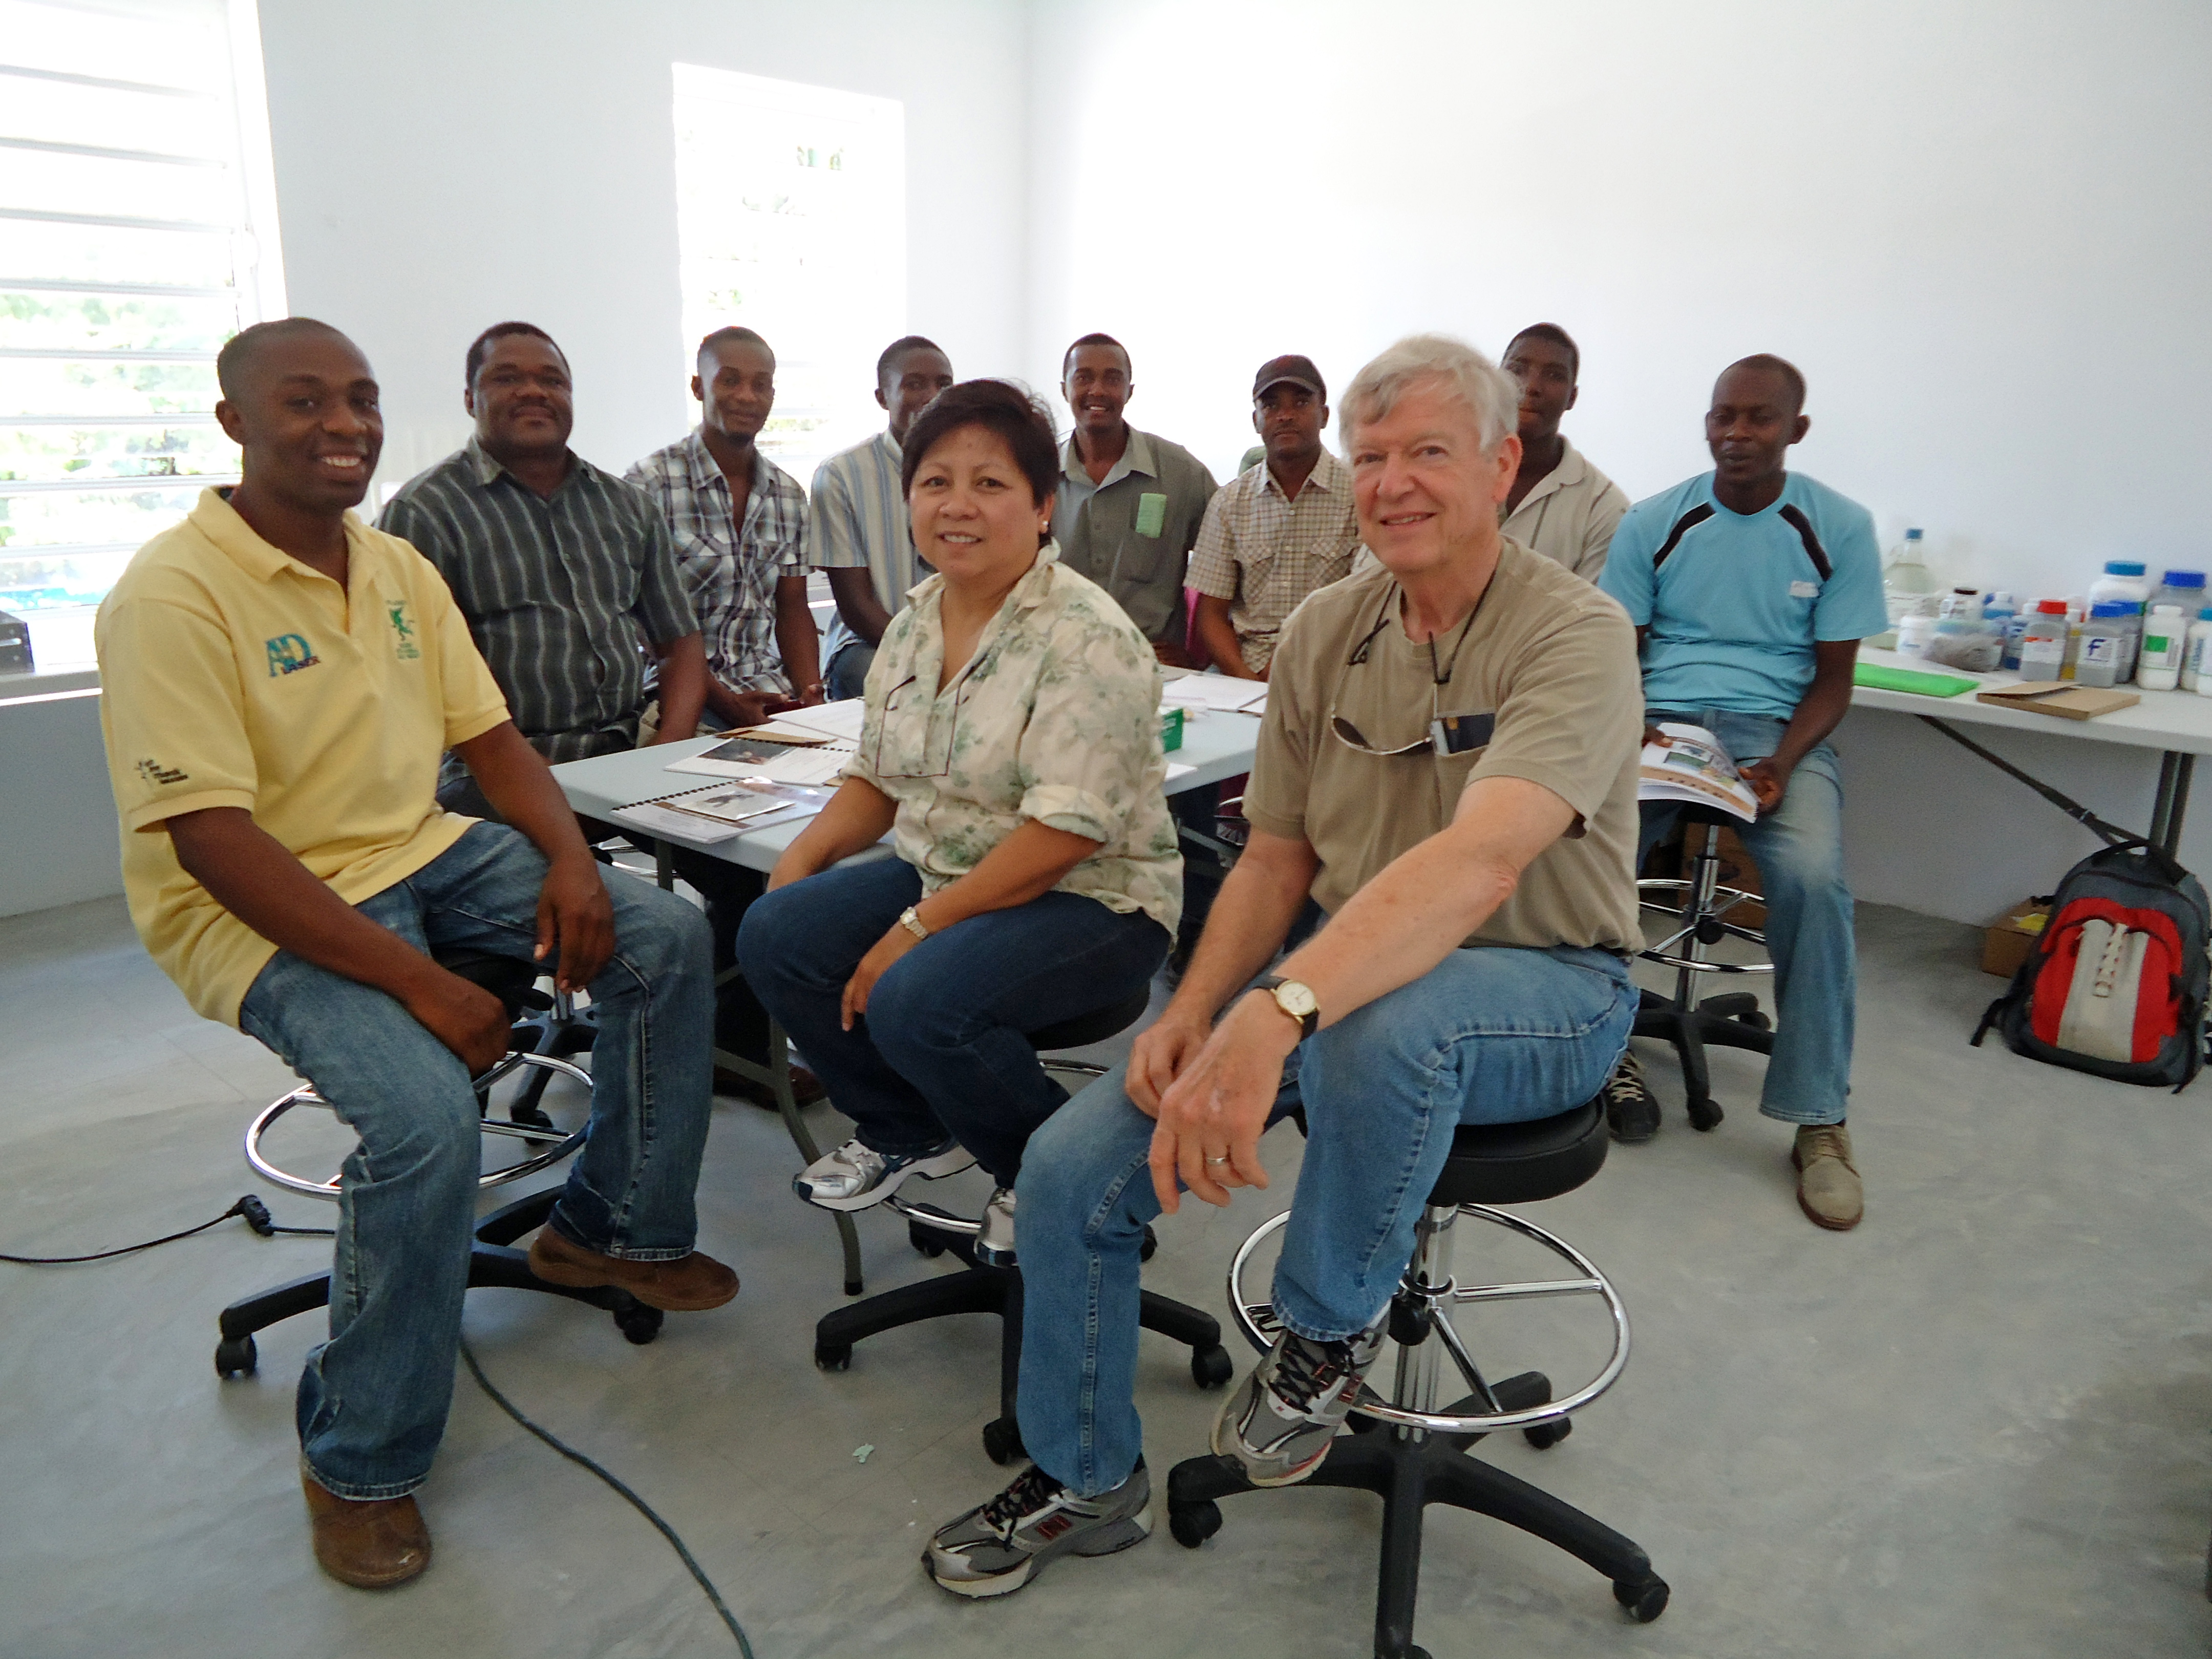 UGA soil scientists Leticia Sonon and David Kissel recently traveled to Haiti to help set up a soil-testing lab and to teach several teachers and school officials how use the equipment. Haitian agriculture expert Eddy-Jean Etienne, far left in front, traveled to Athens in March to train with Kissel and Sonon, so that he could help supervise the lab.